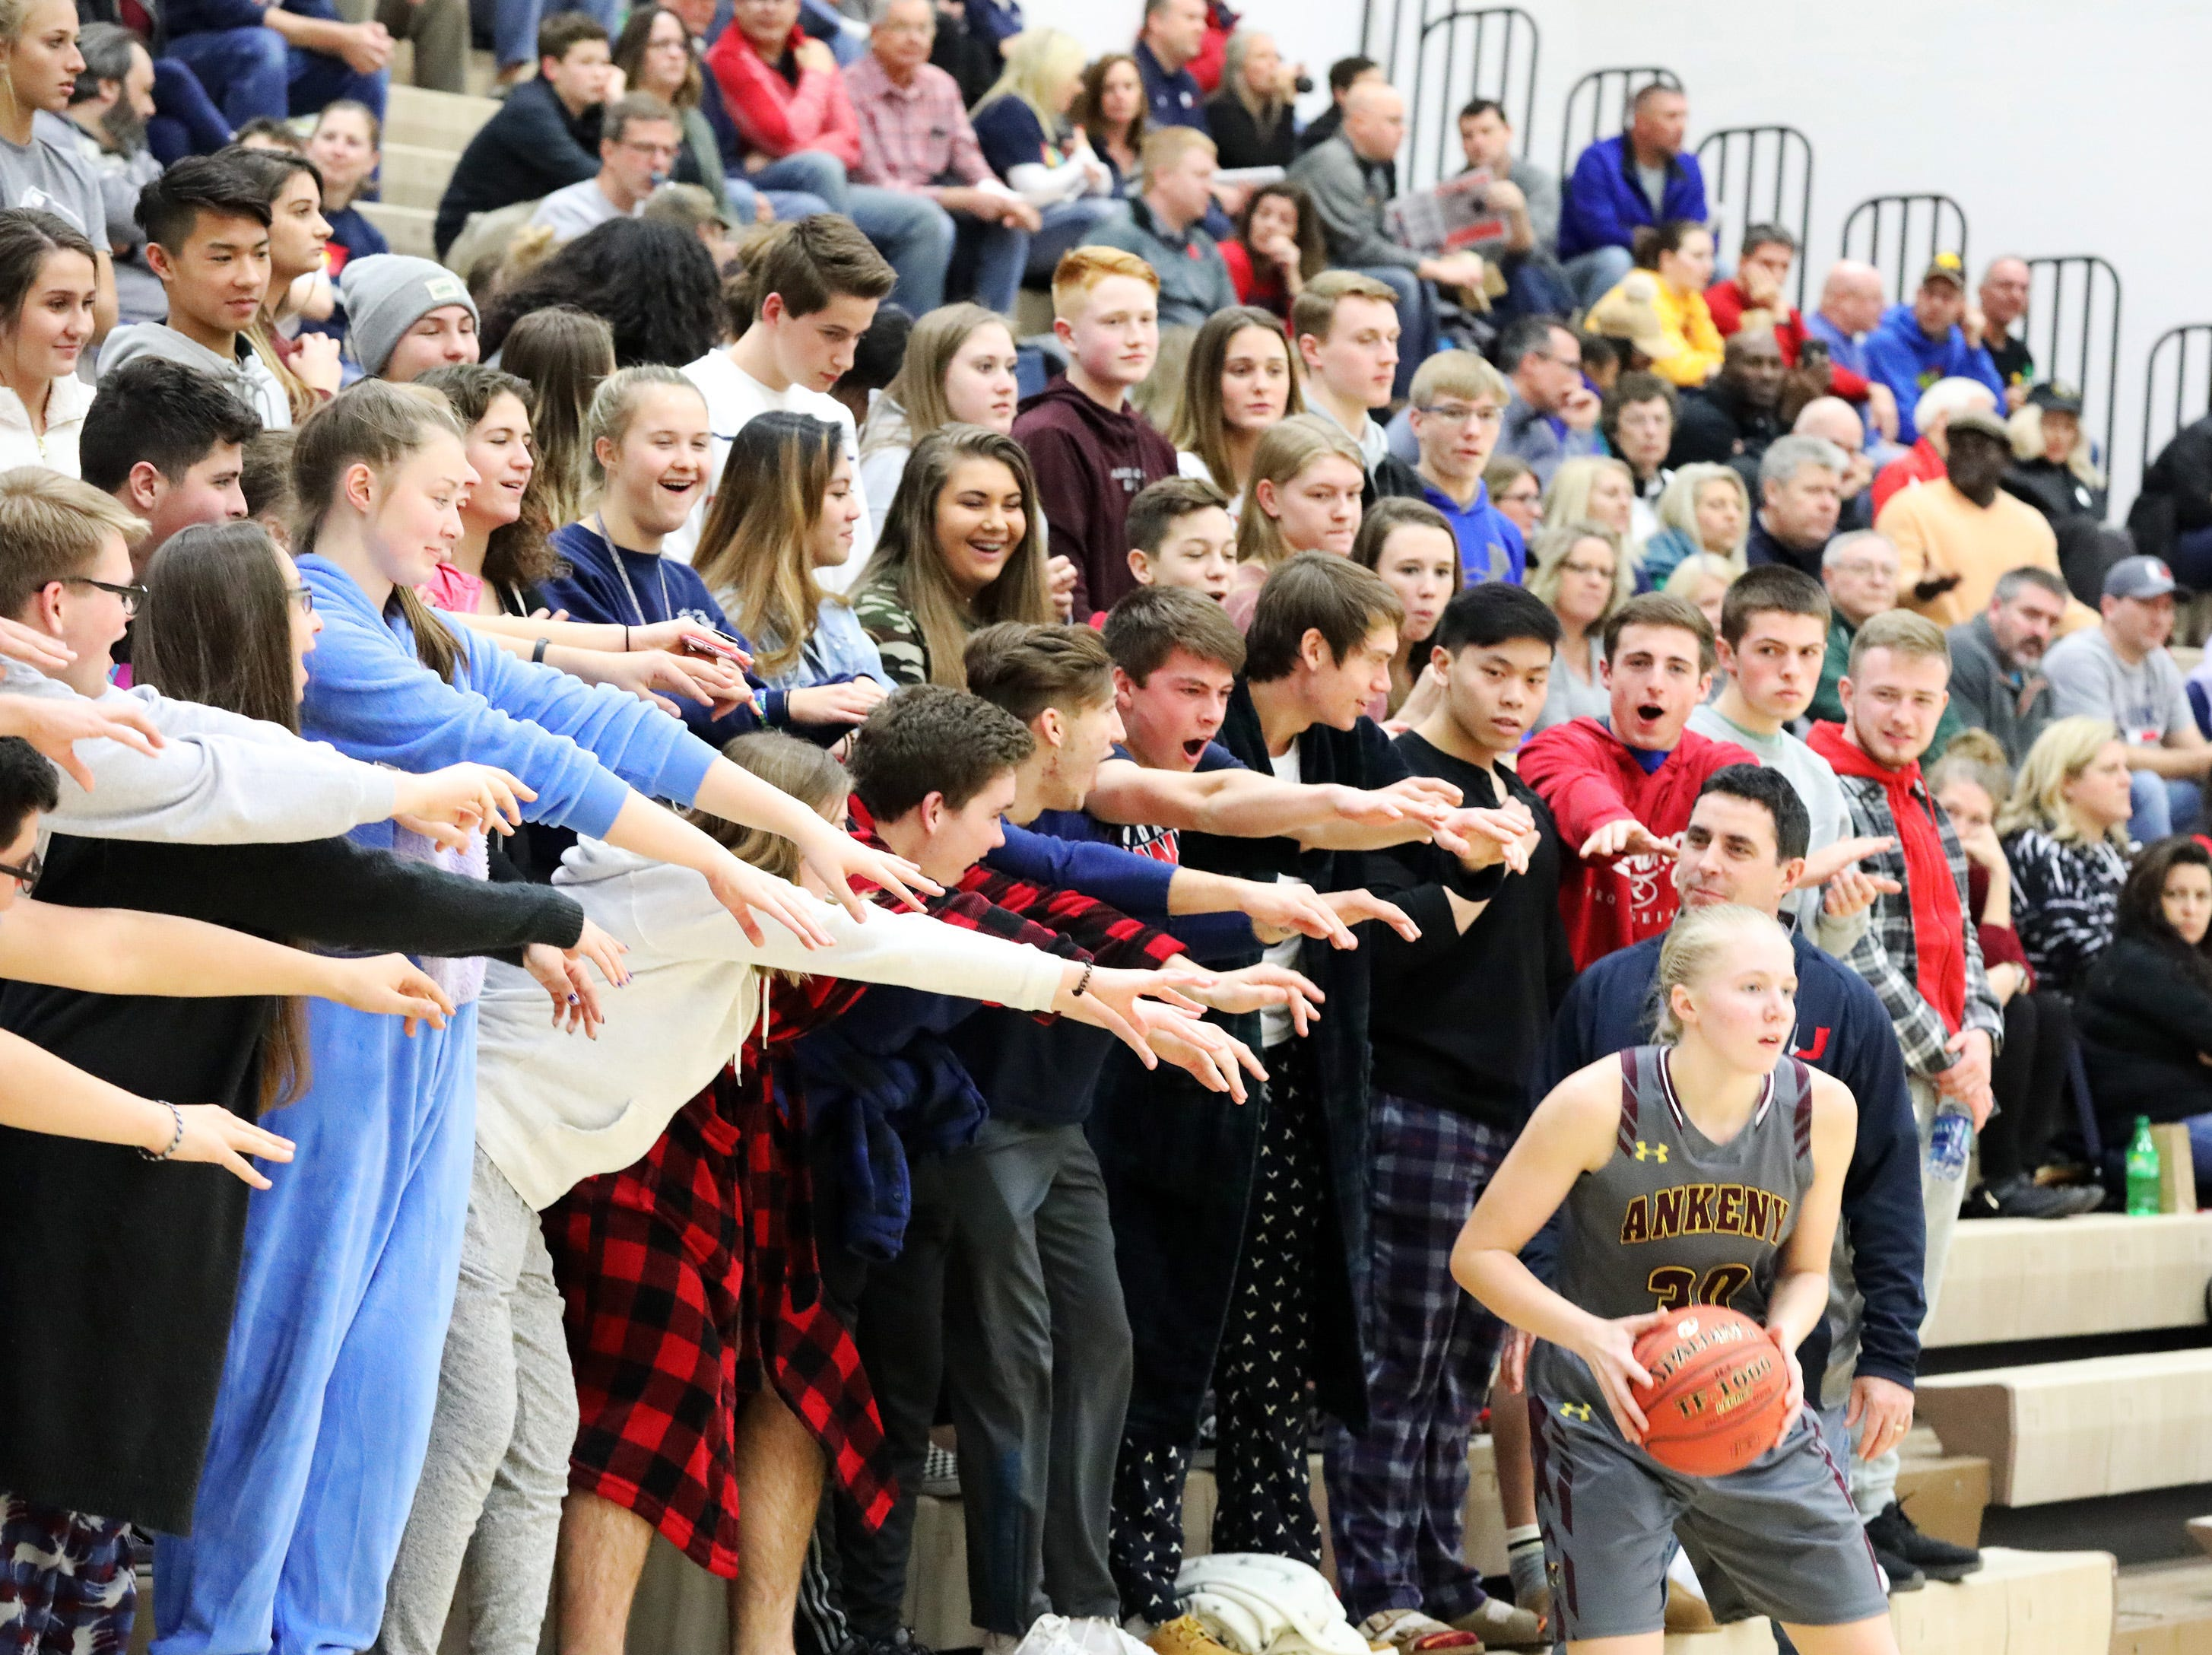 Urbandale students lend a hand to Ankeny sophomore Abby Johnson as the Ankeny Hawkettes compete against the Urbandale J-Hawks in high school basketball on Friday, Dec. 14, 2018 at Urbandale High School. Ankeny won 46 to 40.